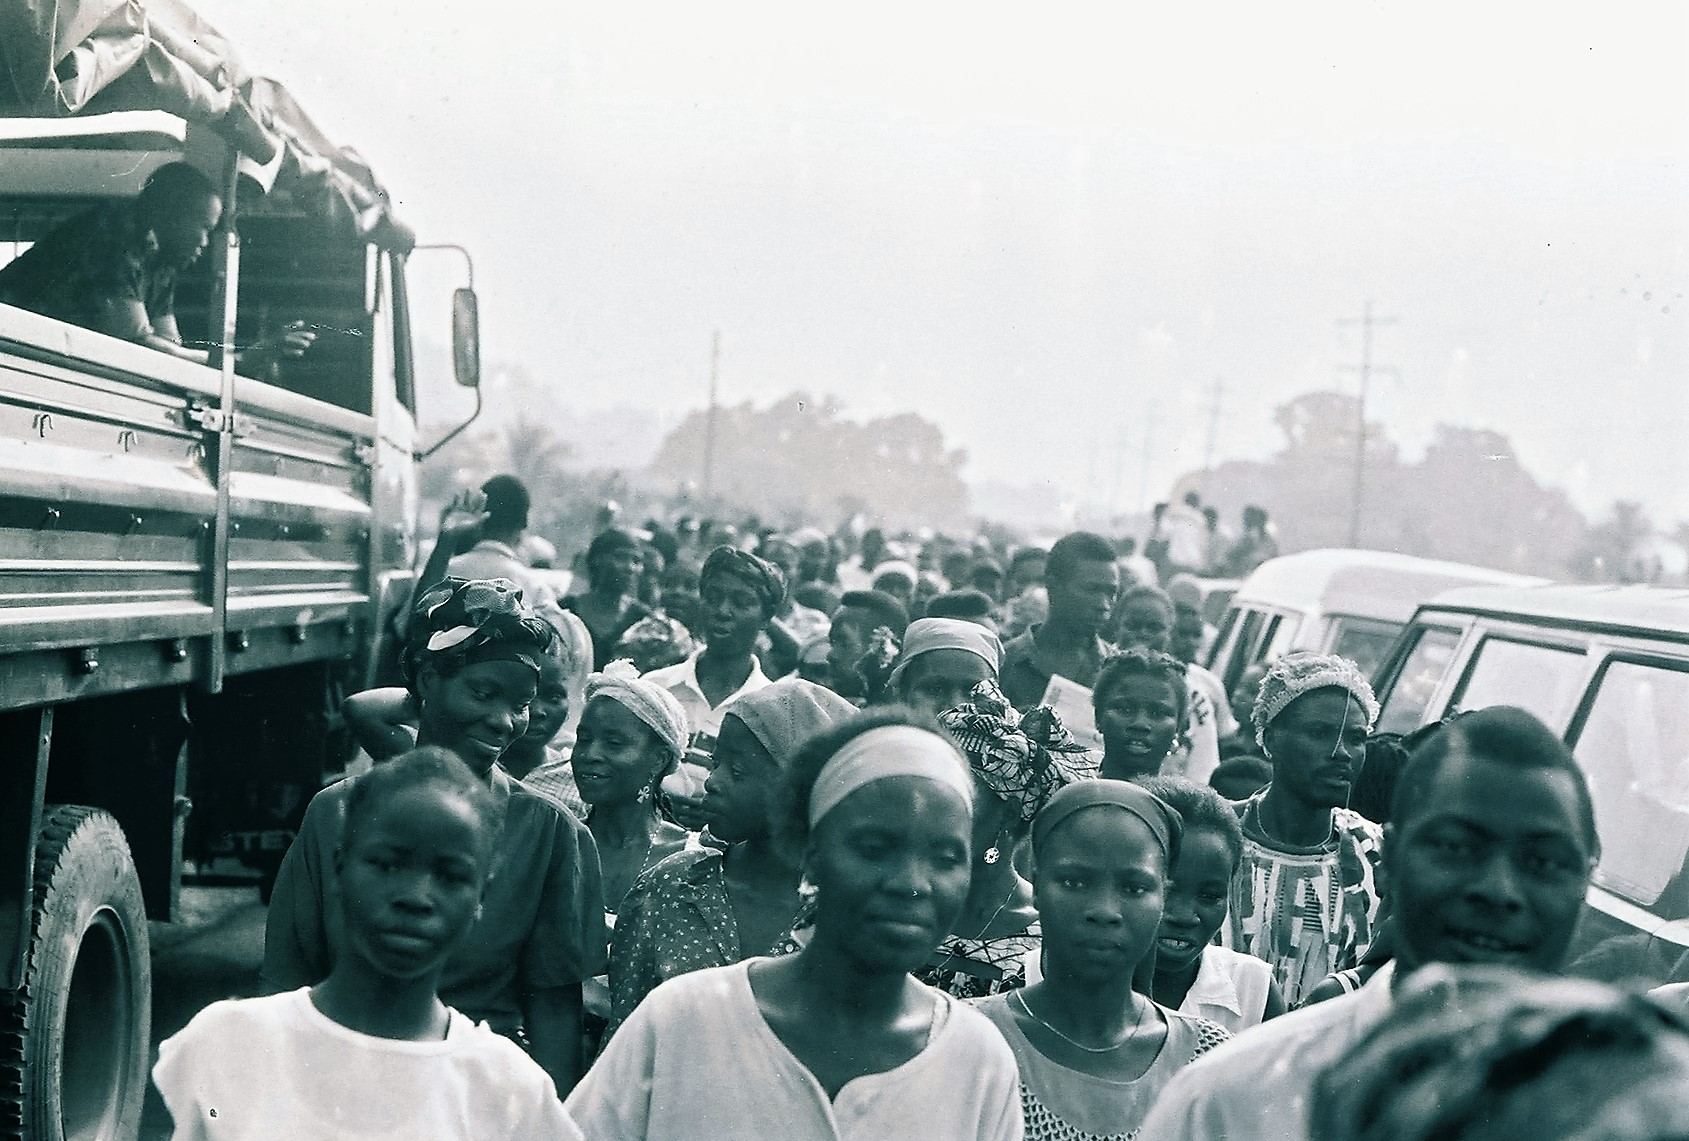 "Thousands of Liberians trapped in then ""Greater Liberia"" flocked into the Mount Barclay buffer zone on the out-sketch of Monrovia in 1991. The await the official re-opening of the main Monrovia Kakata-Gbarnga Highways that connects the rest of the country to the capital. While some came eager to enter Monrovia to search for lost relatives separated the NPFL-AFL war into its second year. Many too advantage of this single act by the faction to seek respite from harassment and brutality by the NPFL. Others escape the faction's territories known as ""Taylor Land."" Former NPFL spokesperson-later Defense Minister Jucontee Thomas Woewiyu led a high-powered NPFL delegation to this elaborate event, accompanied by other NPFL officials including lawyer Francis Garlawolo, NPFL chief of staff Gen. Isaac Musa and the front's information minister, Joseph Wolobah Mulbah(not in this photograph). Photo: James K. Fasuekoi/The AfricaPaper"